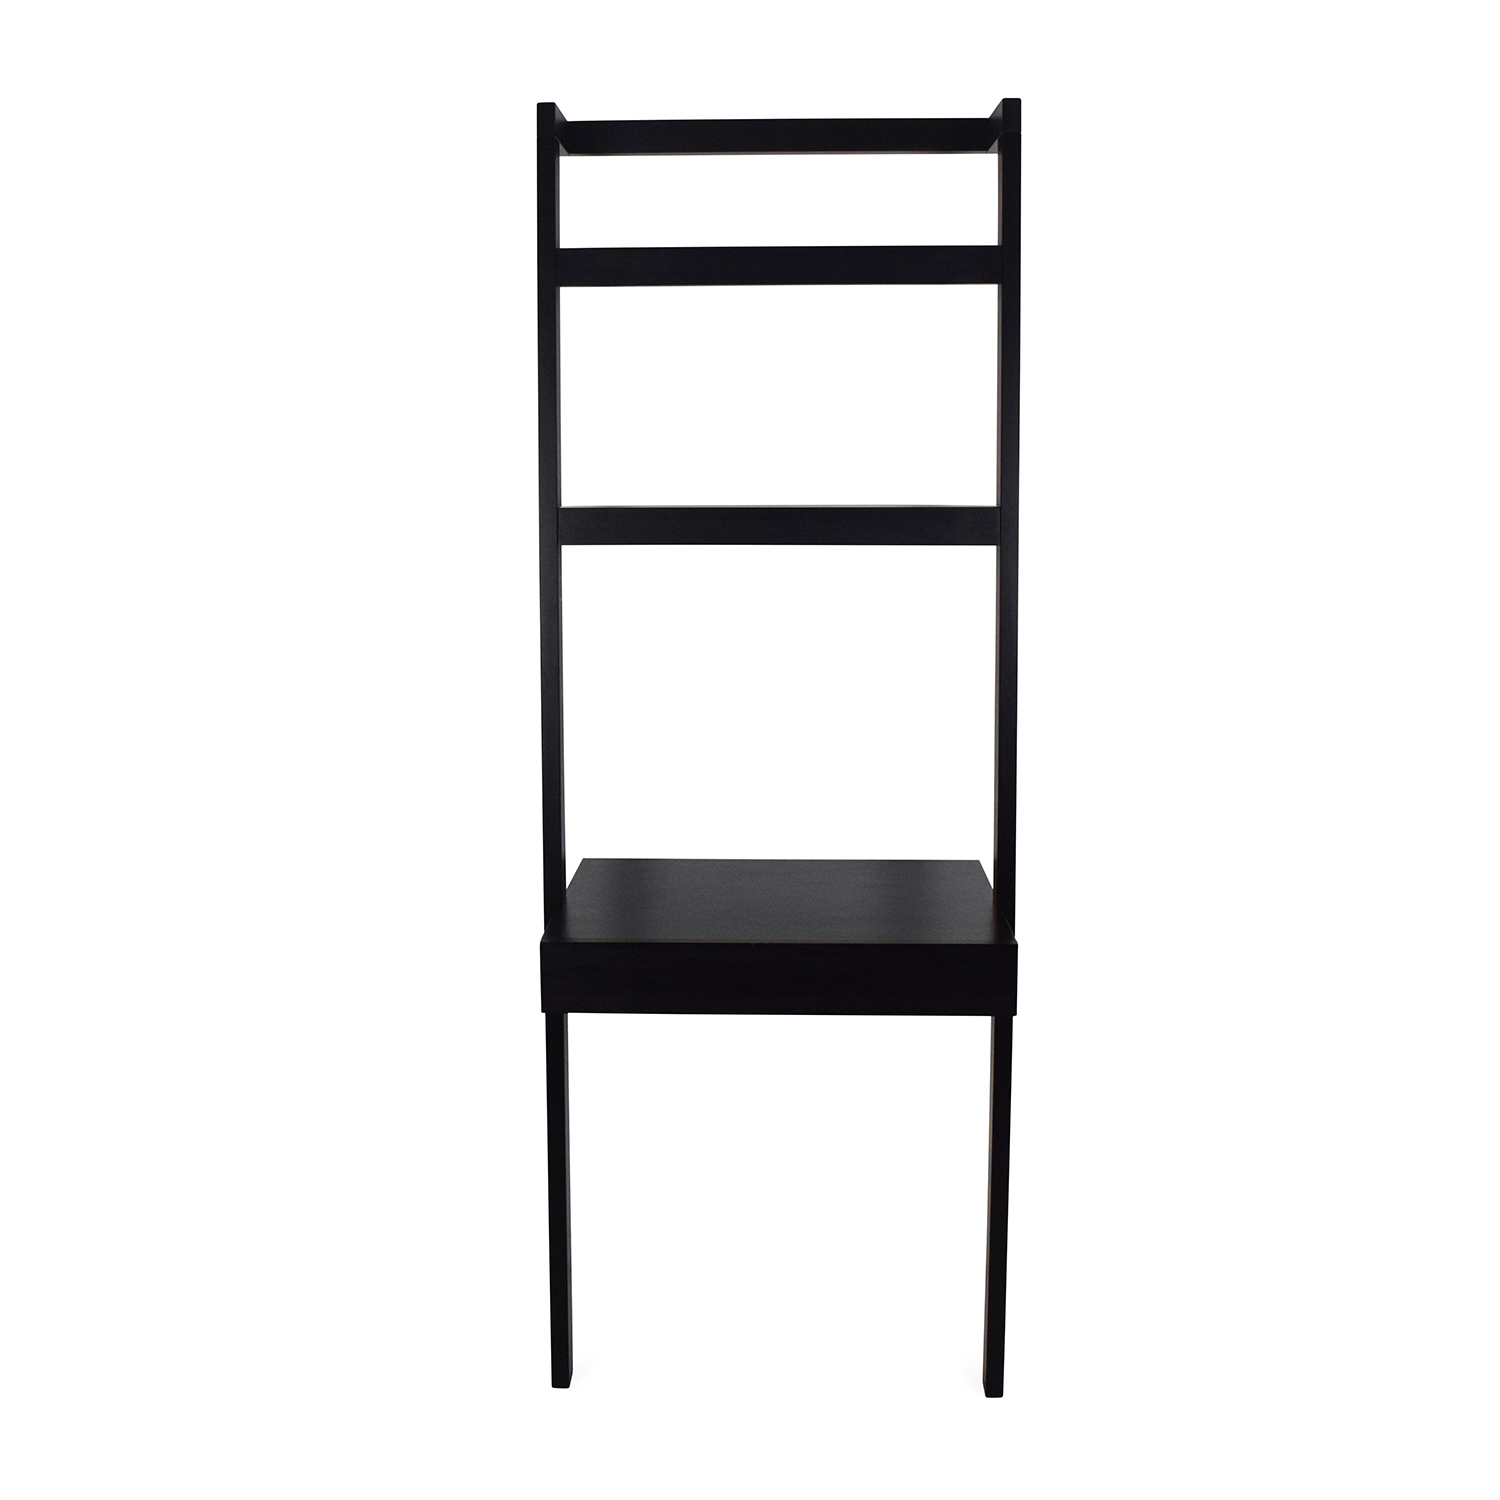 Crate and Barrel Crate and Barrel Leaning Shelf price